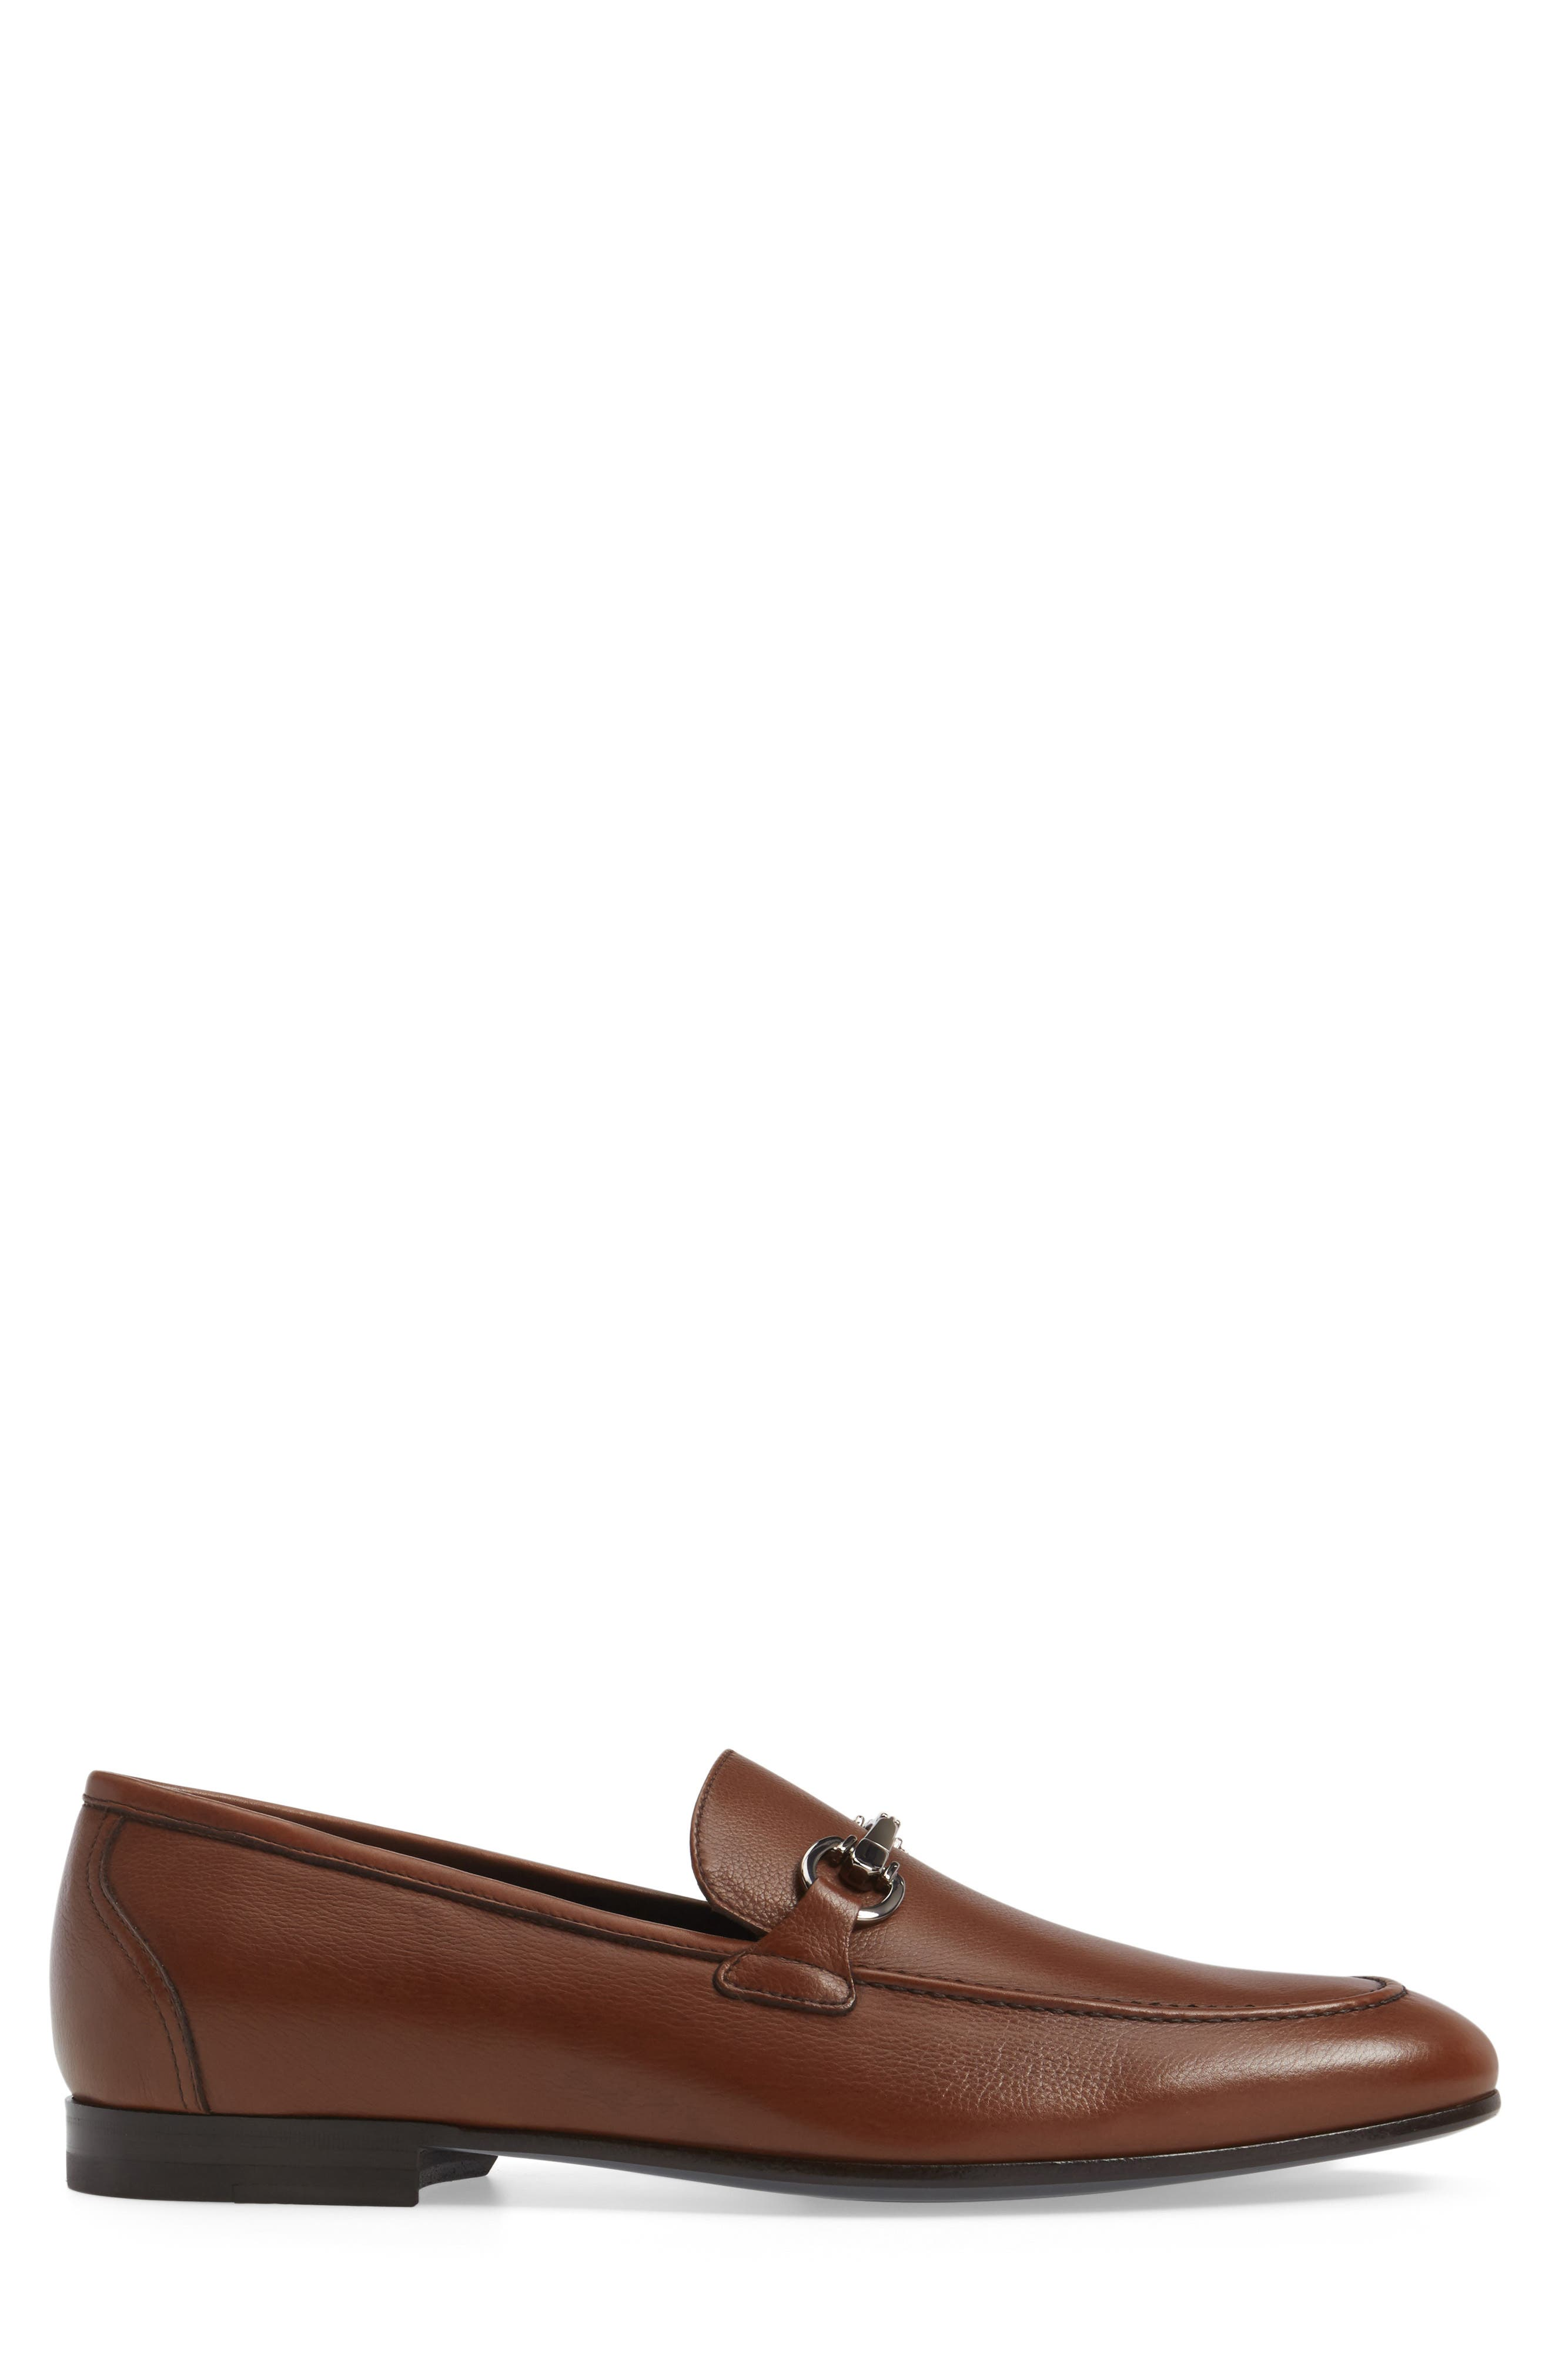 Brianza Bit Loafer,                             Alternate thumbnail 17, color,